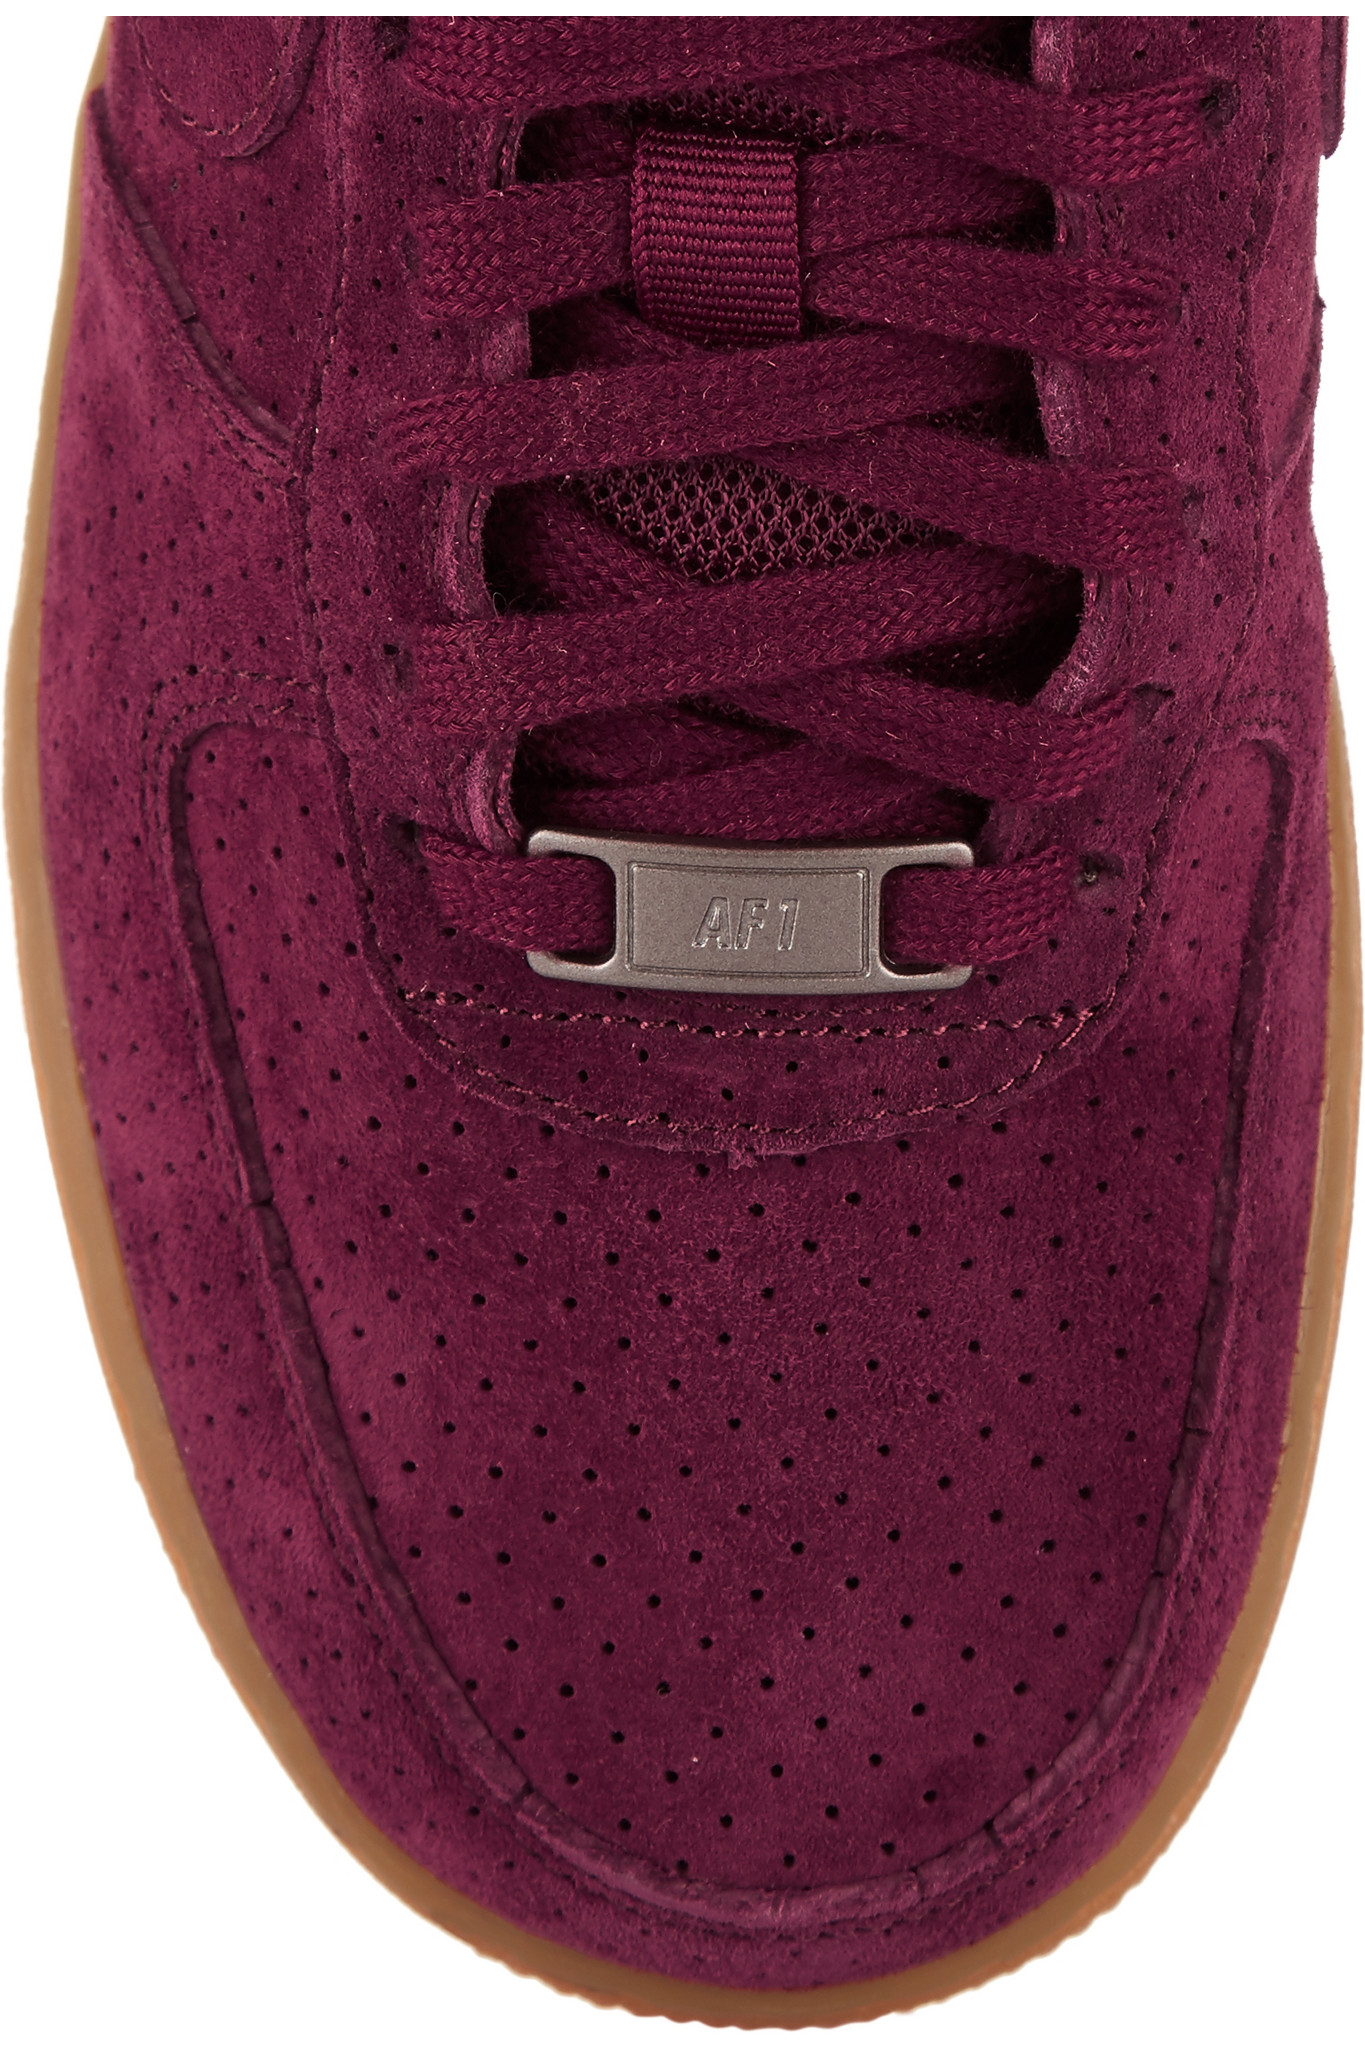 chaussures de sport f00fa d7af3 nike air force 1 burgundy suede